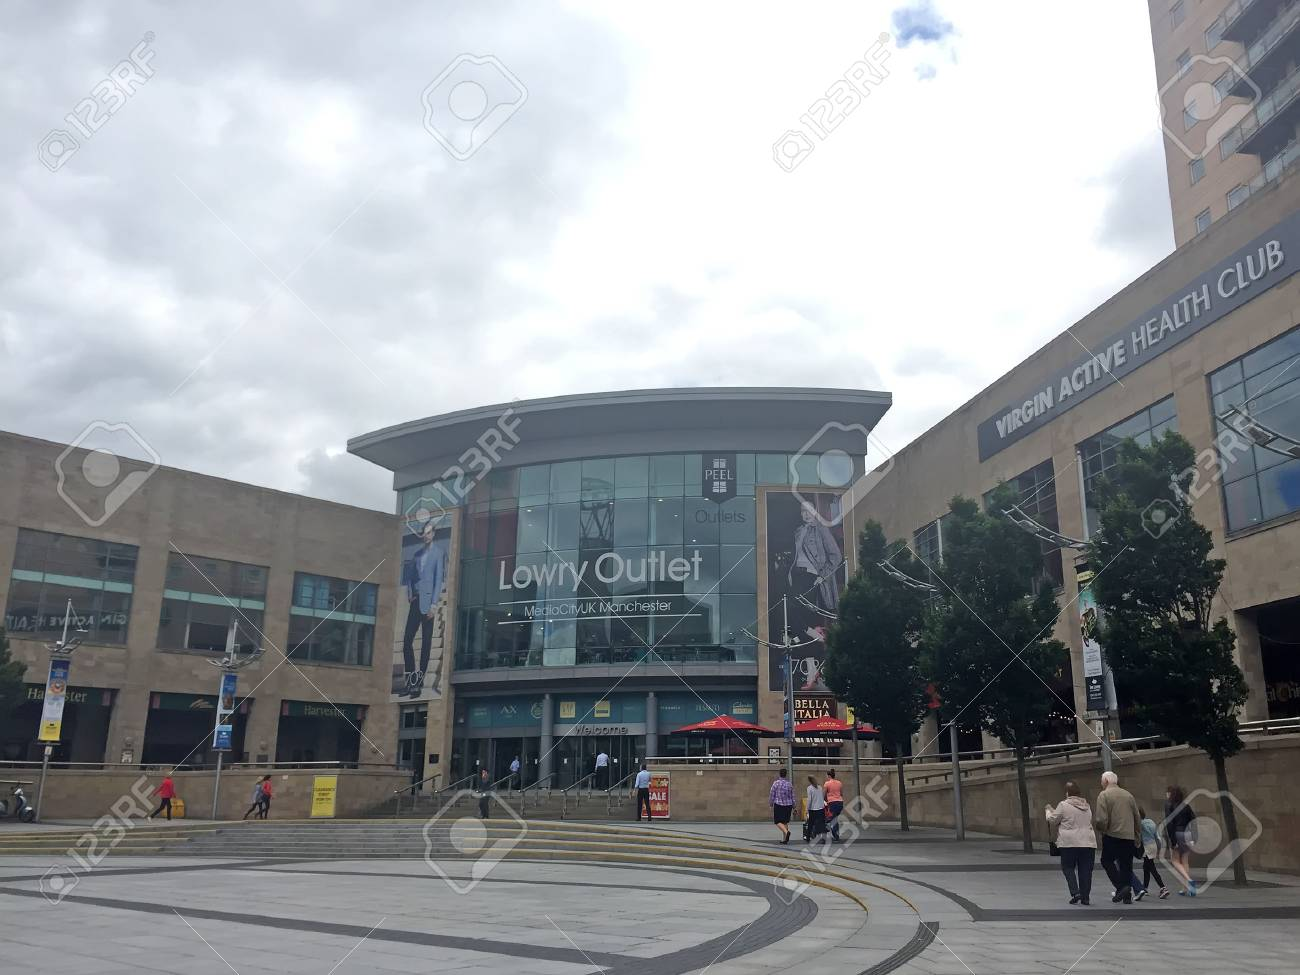 64f81e2167d Manchester - July 27  Lowry Outlet Shopping Center